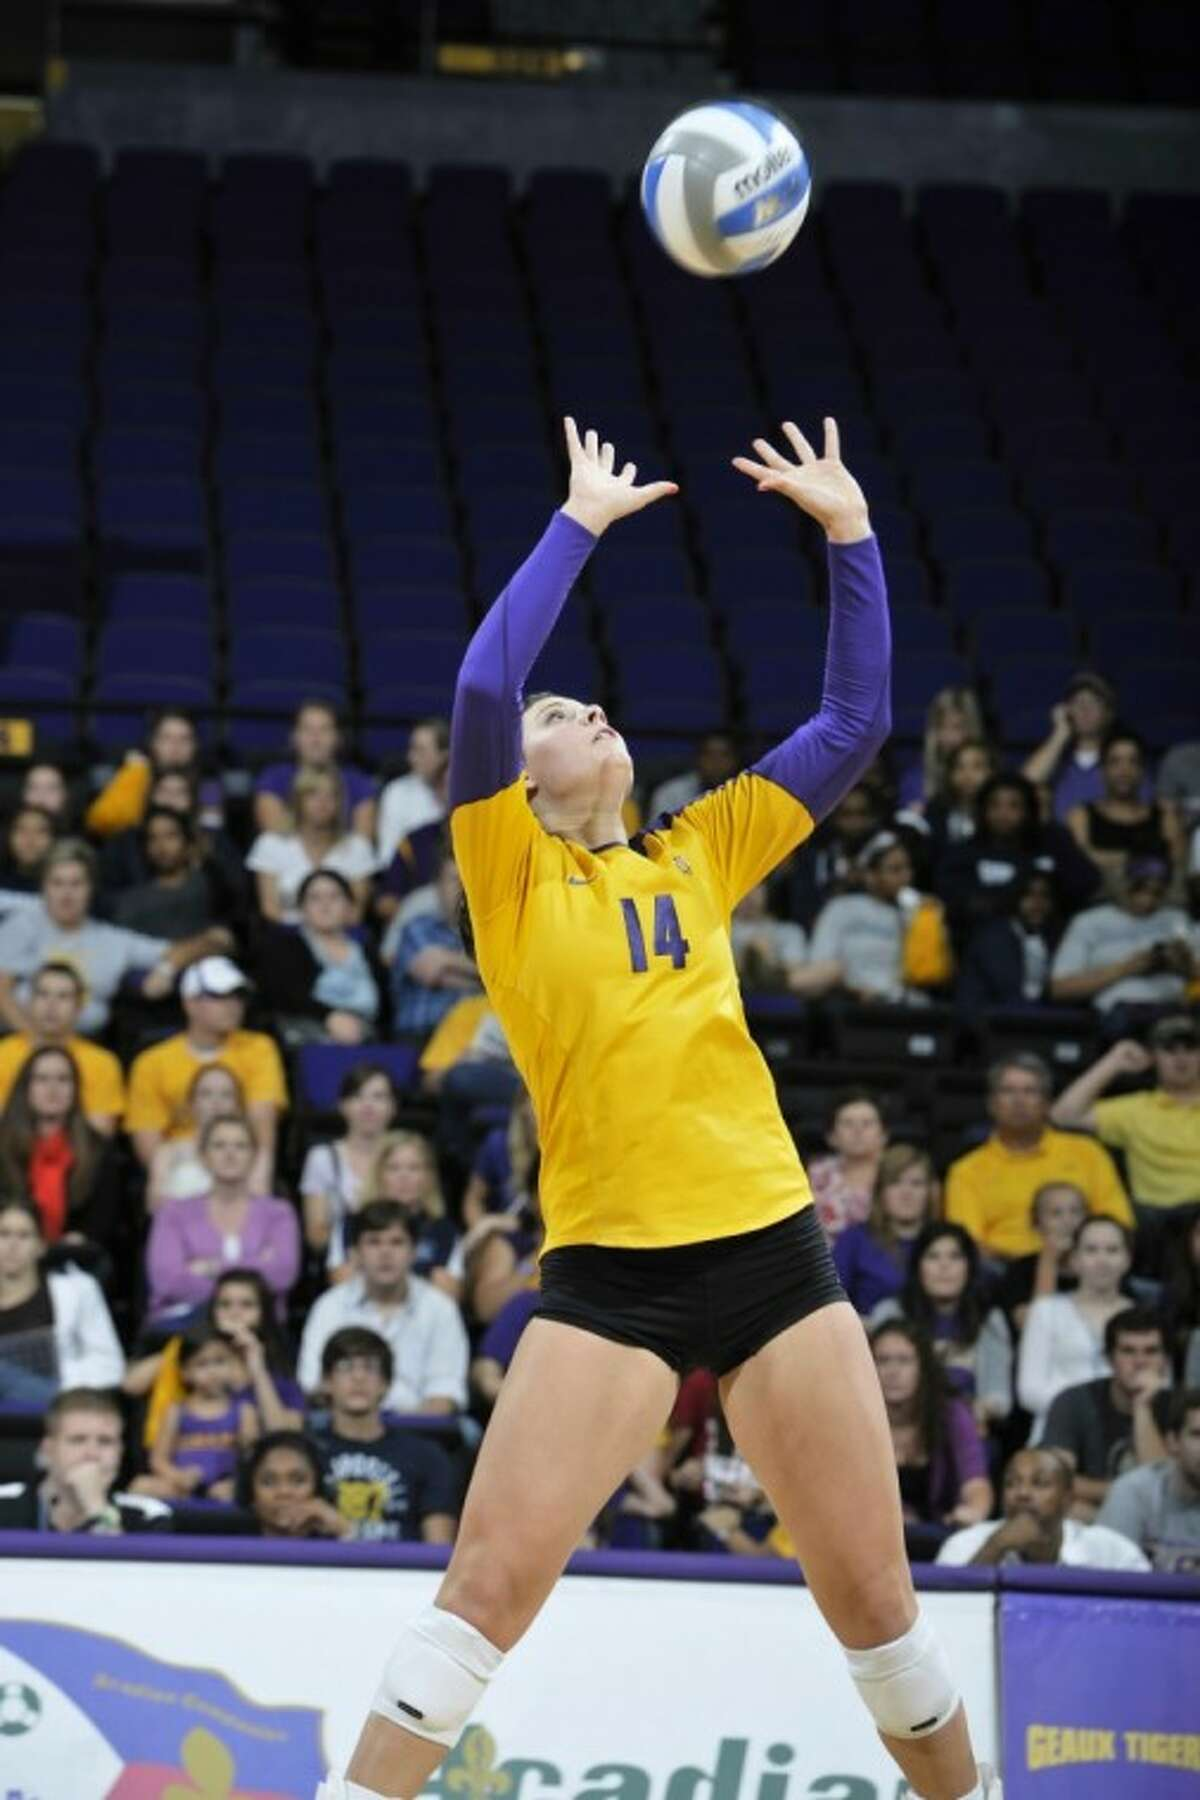 Pearland product Malorie Pardo sets the ball for her LSU teammates in a game this past fall. Pardo recently completed her freshman season for the Lady Tigers.